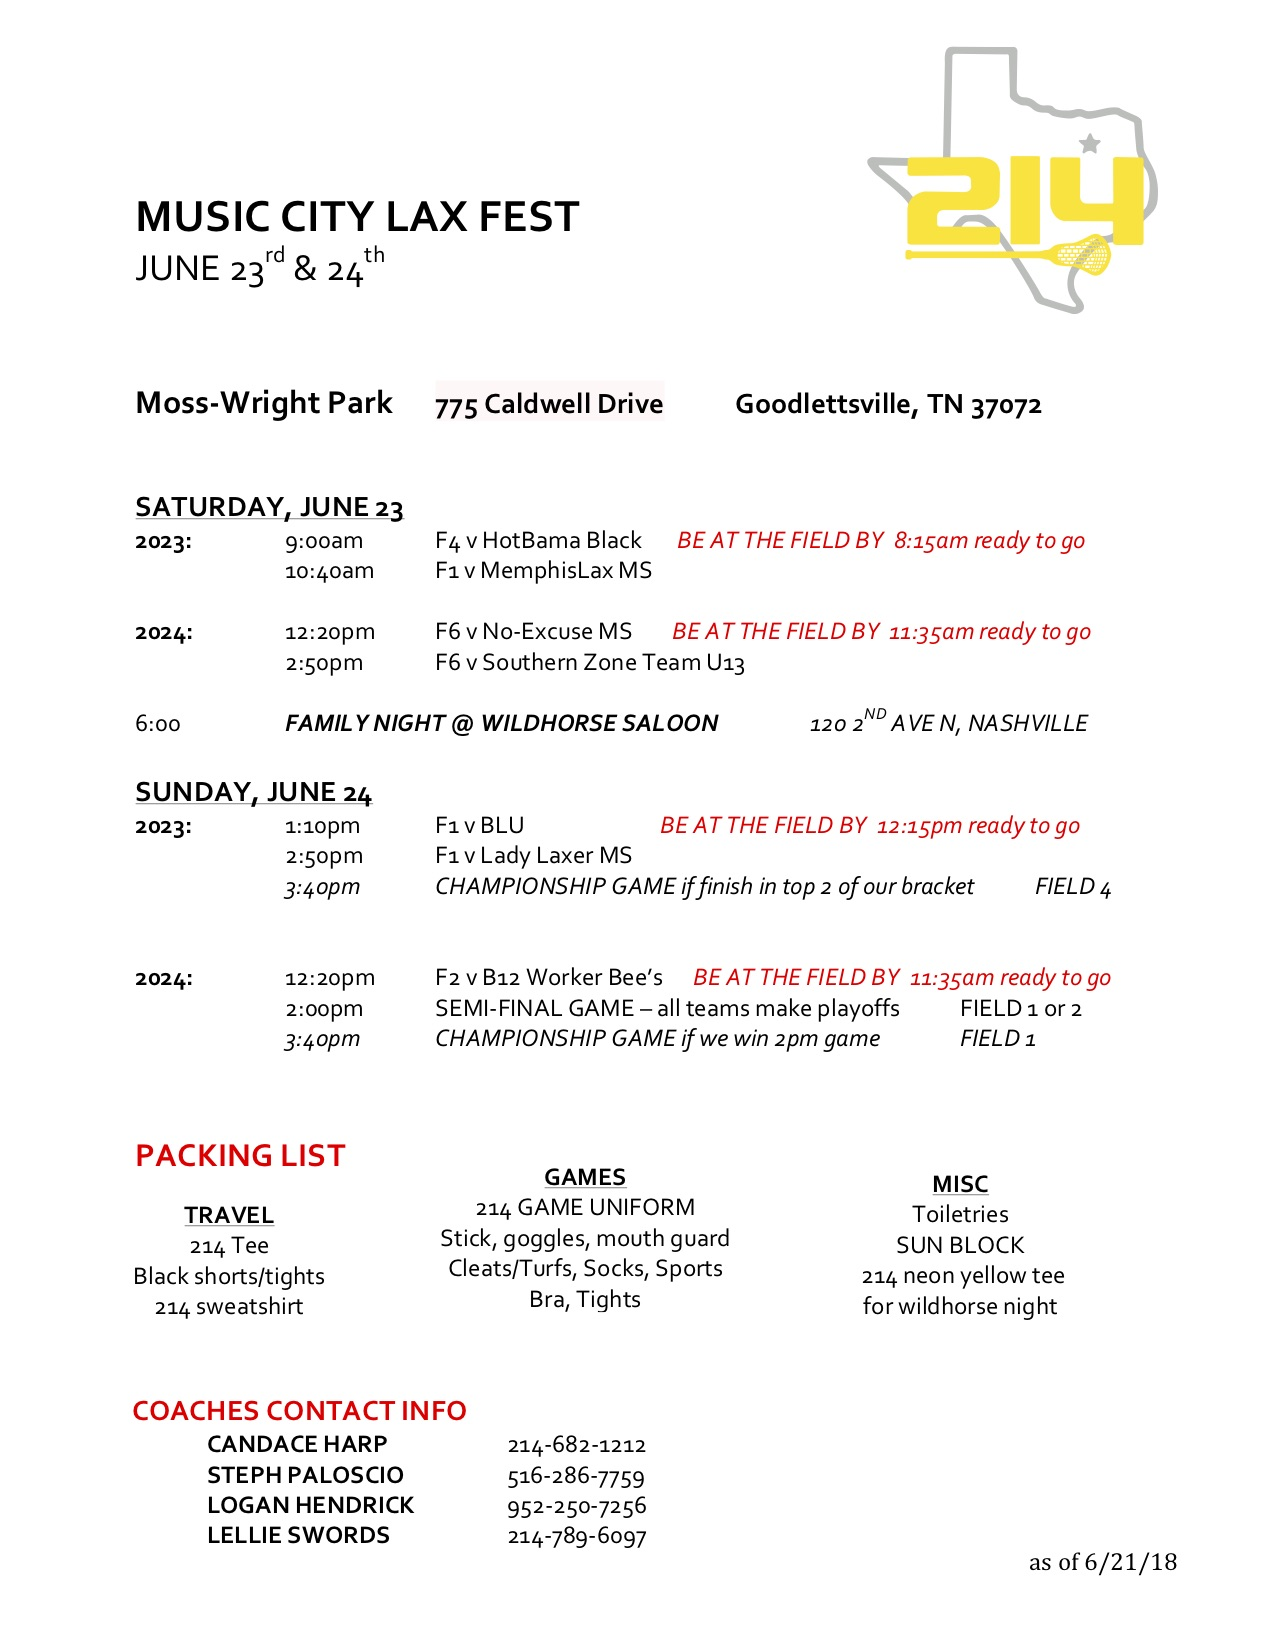 MUSIC CITY LAXFest Itinerary v2.jpg